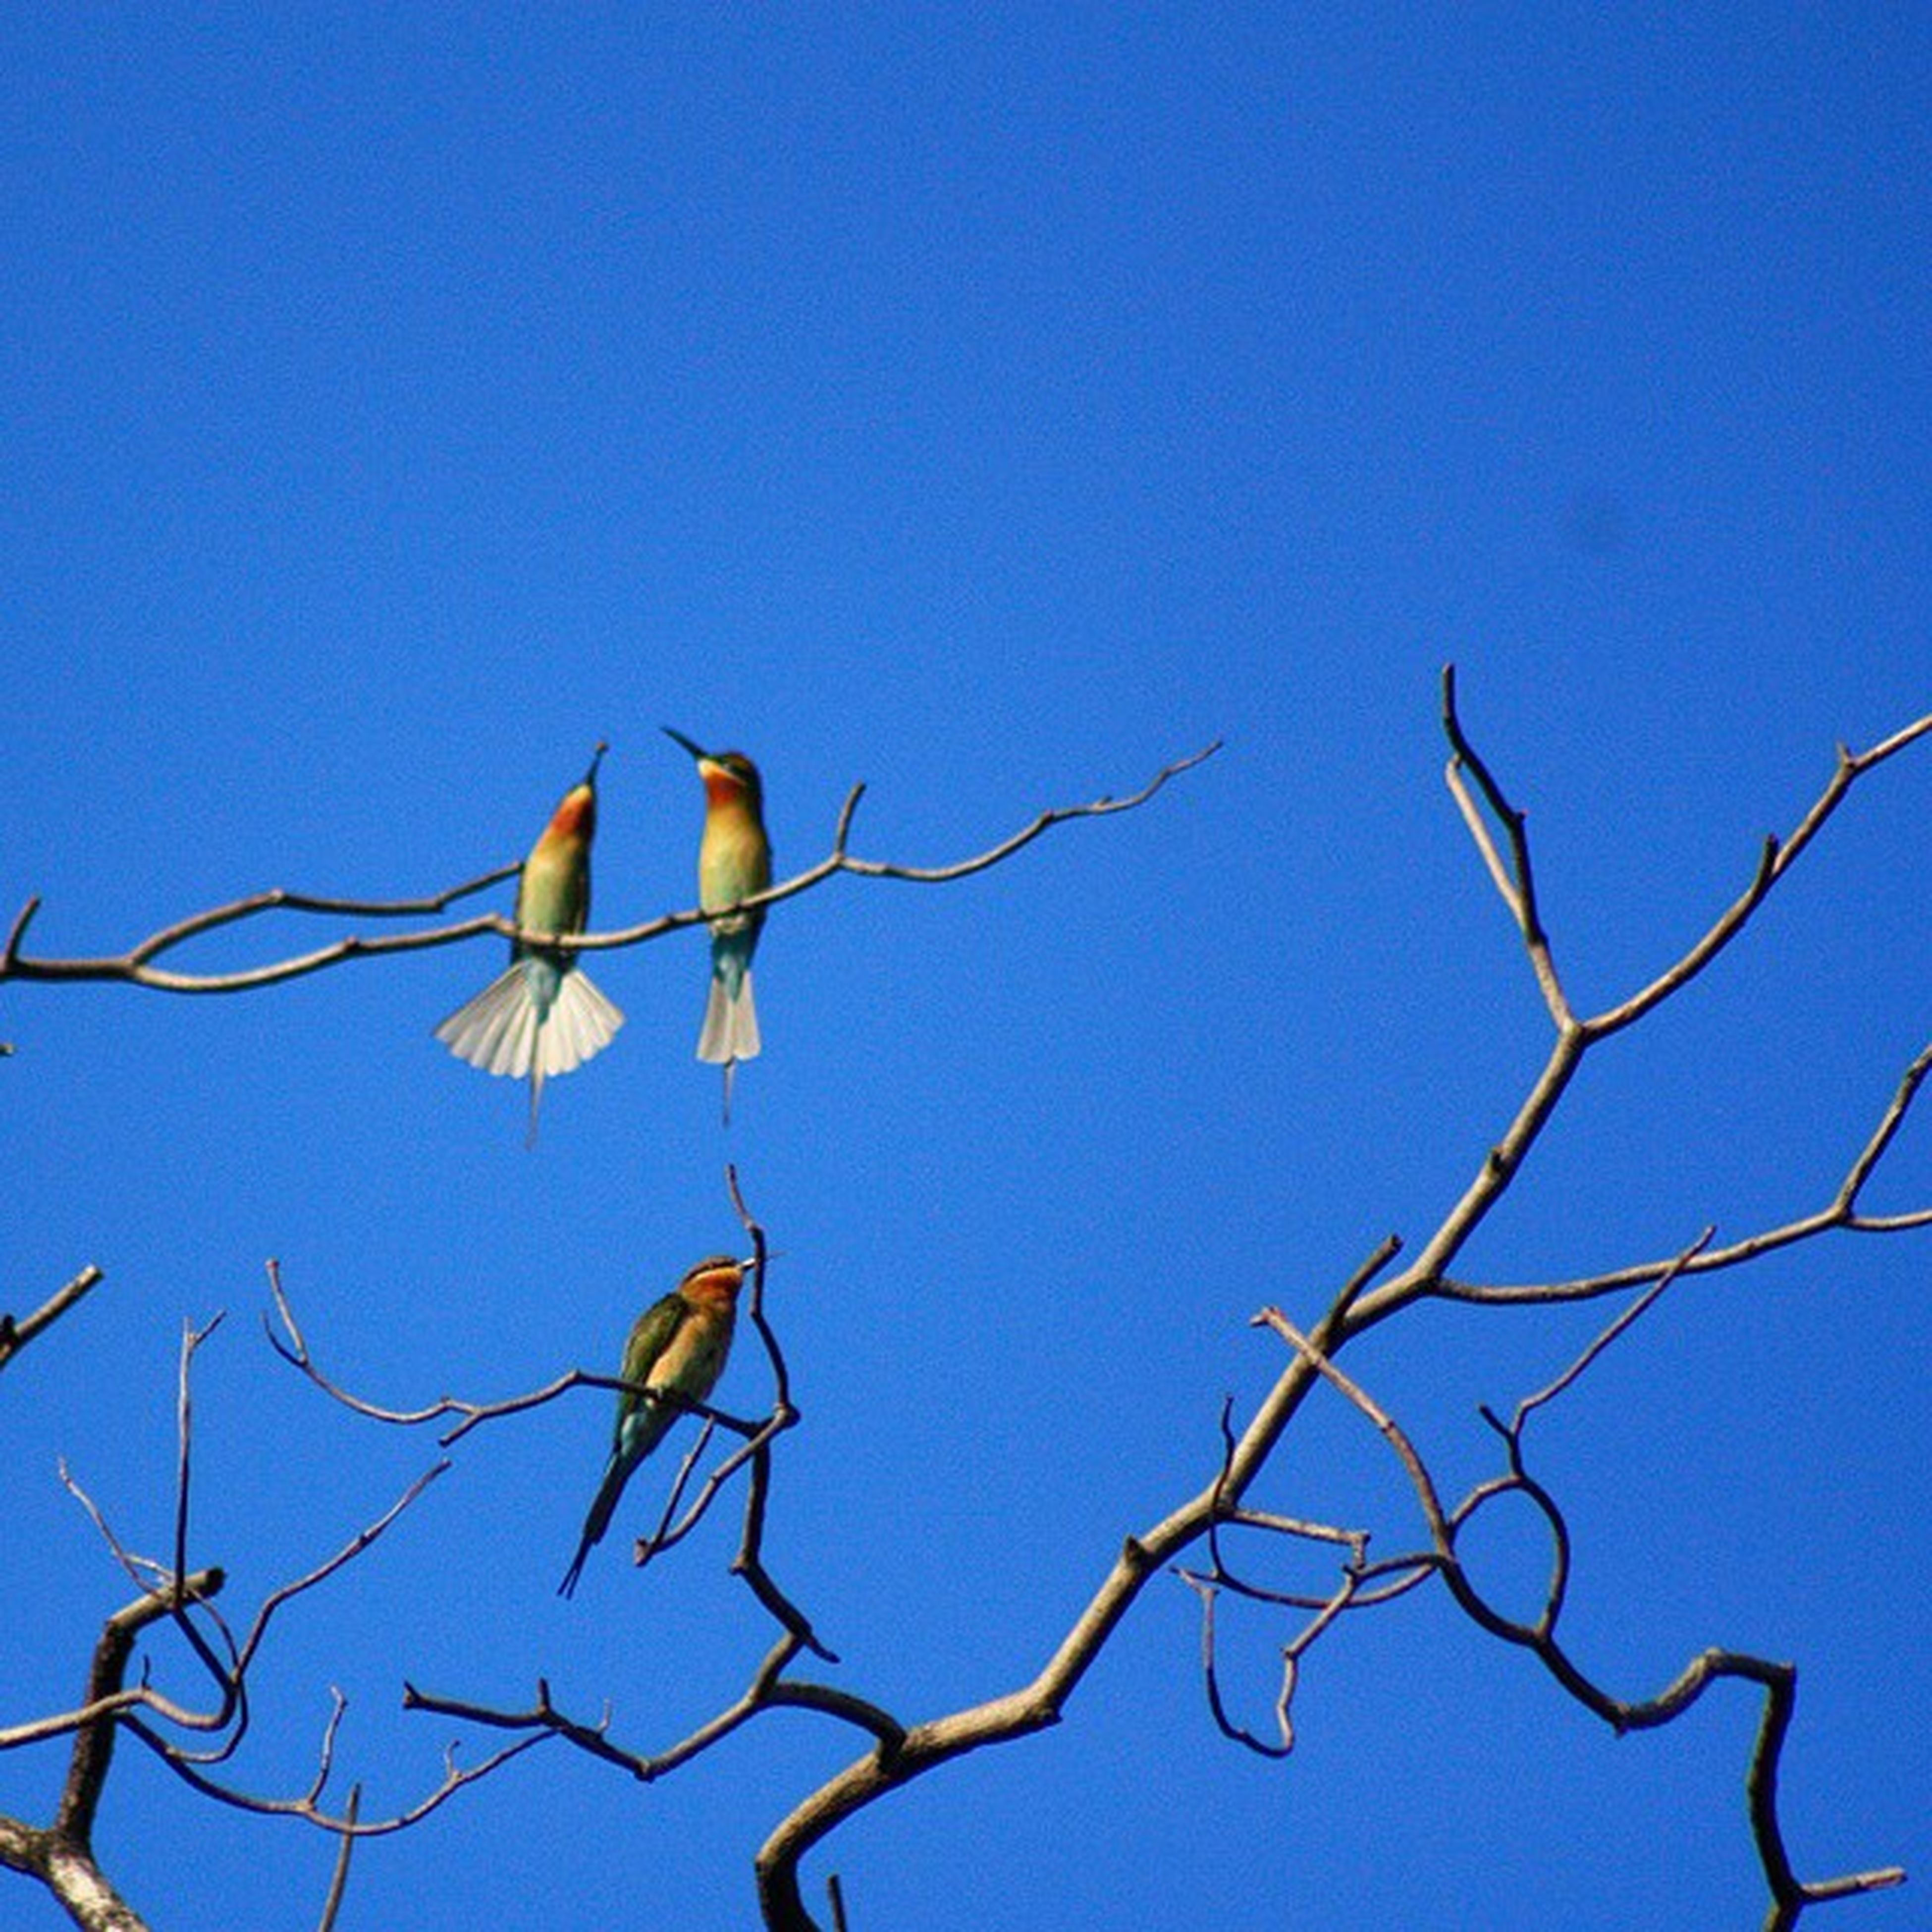 bird, clear sky, low angle view, animal themes, animals in the wild, blue, wildlife, perching, copy space, one animal, branch, flying, bare tree, nature, spread wings, day, outdoors, flock of birds, no people